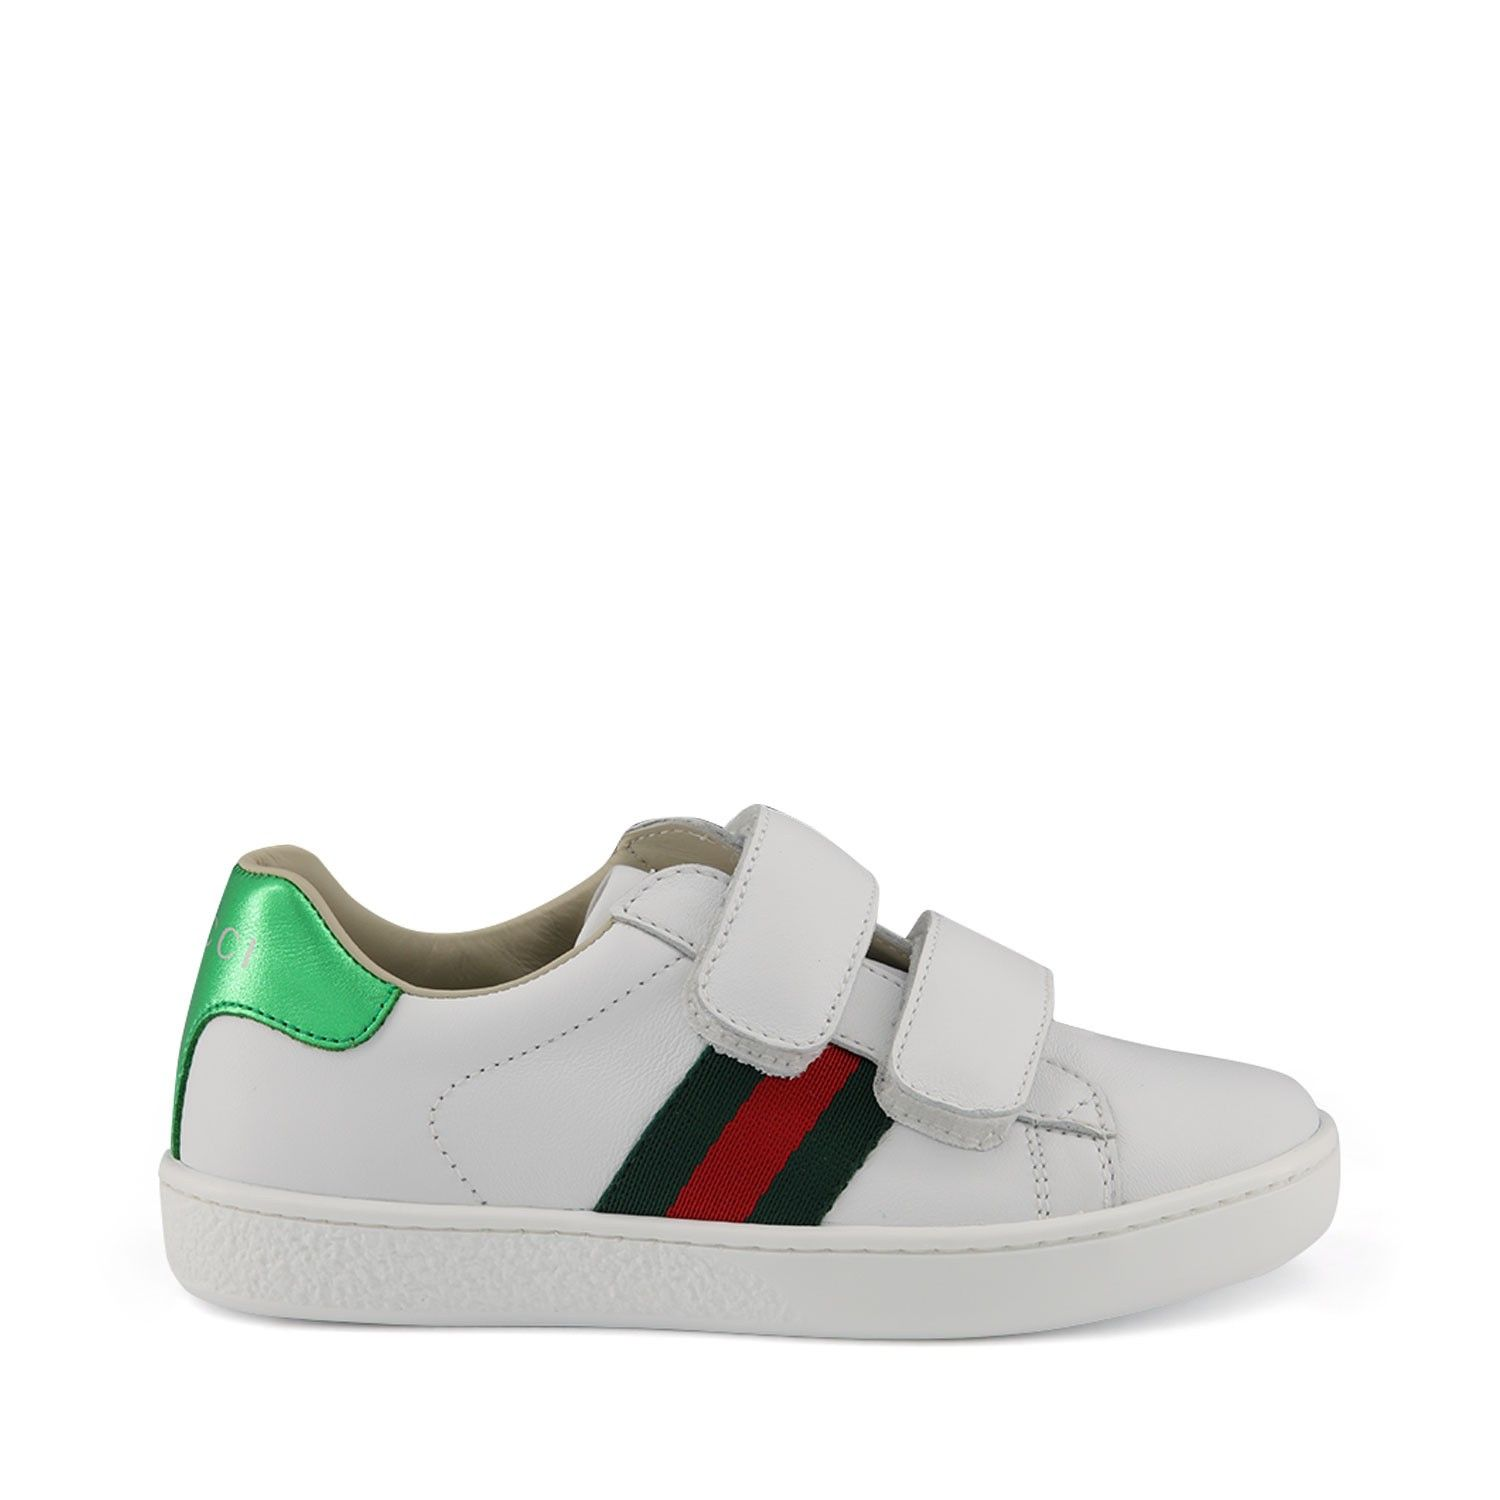 Picture of Gucci 455448 kids sneakers white